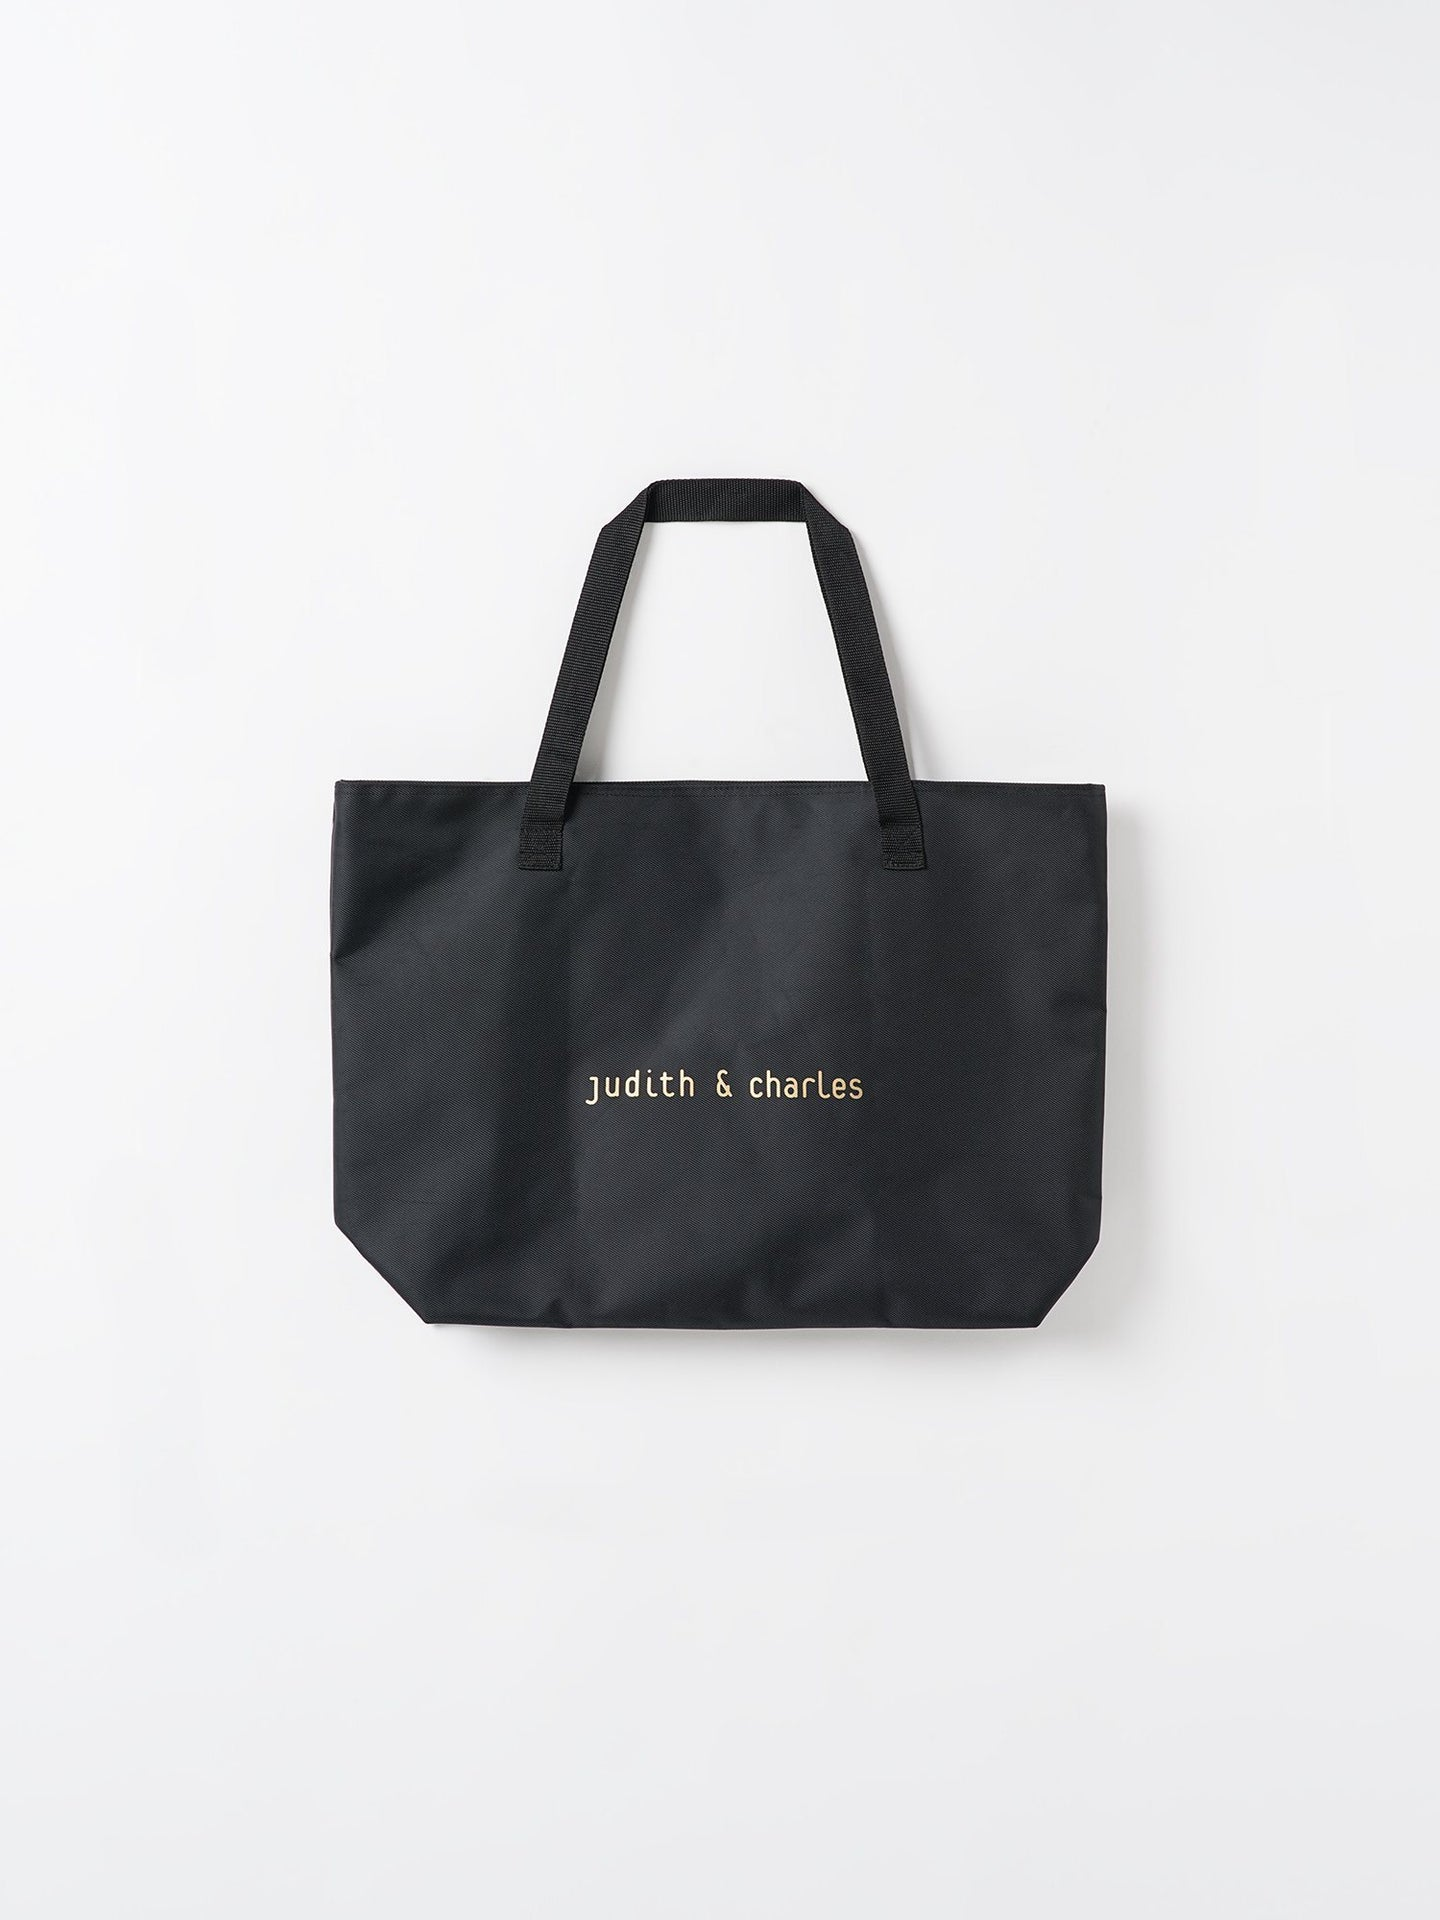 Beach Bag - Judith & Charles